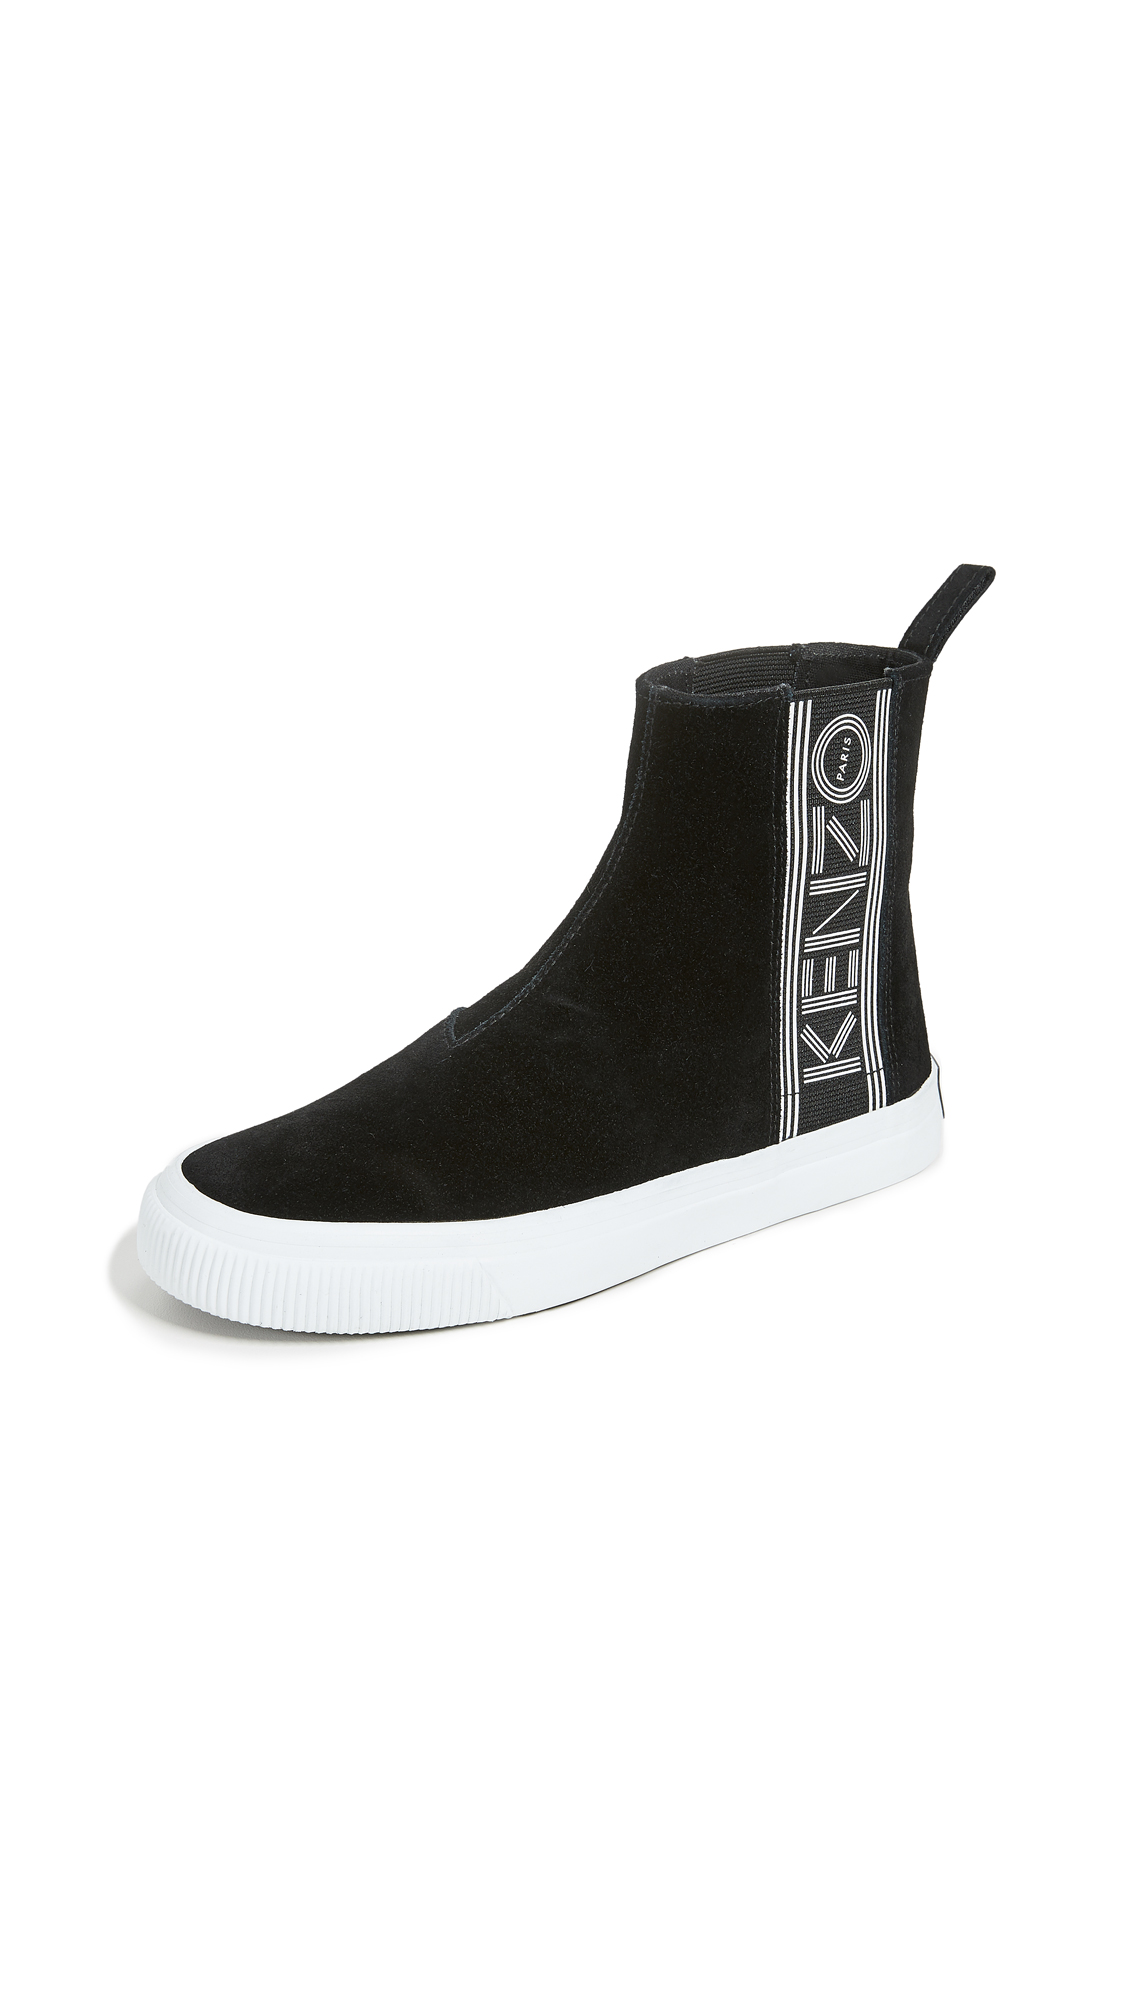 KENZO Kapri High Top Sneakers